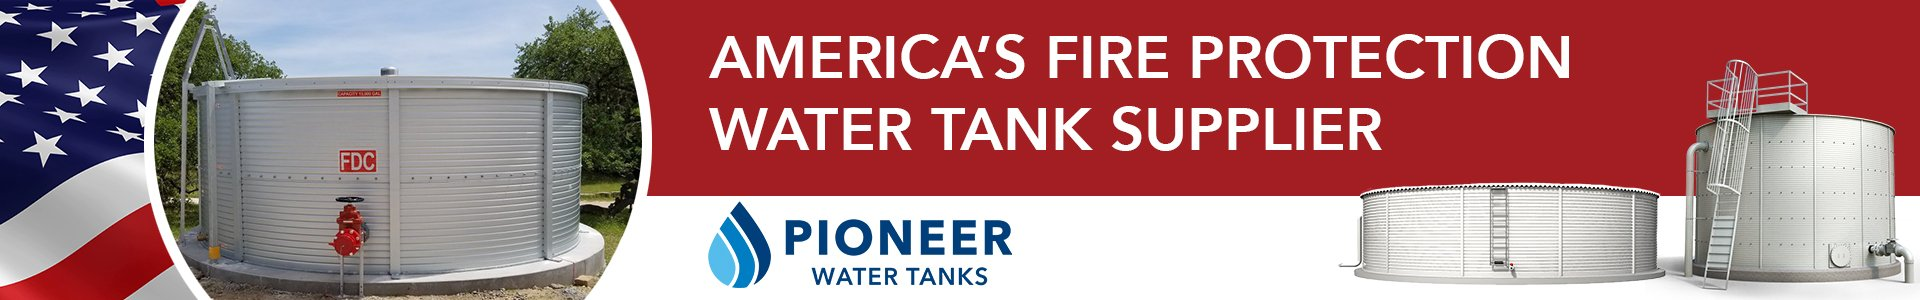 Fire Protection Water Tank Supplier